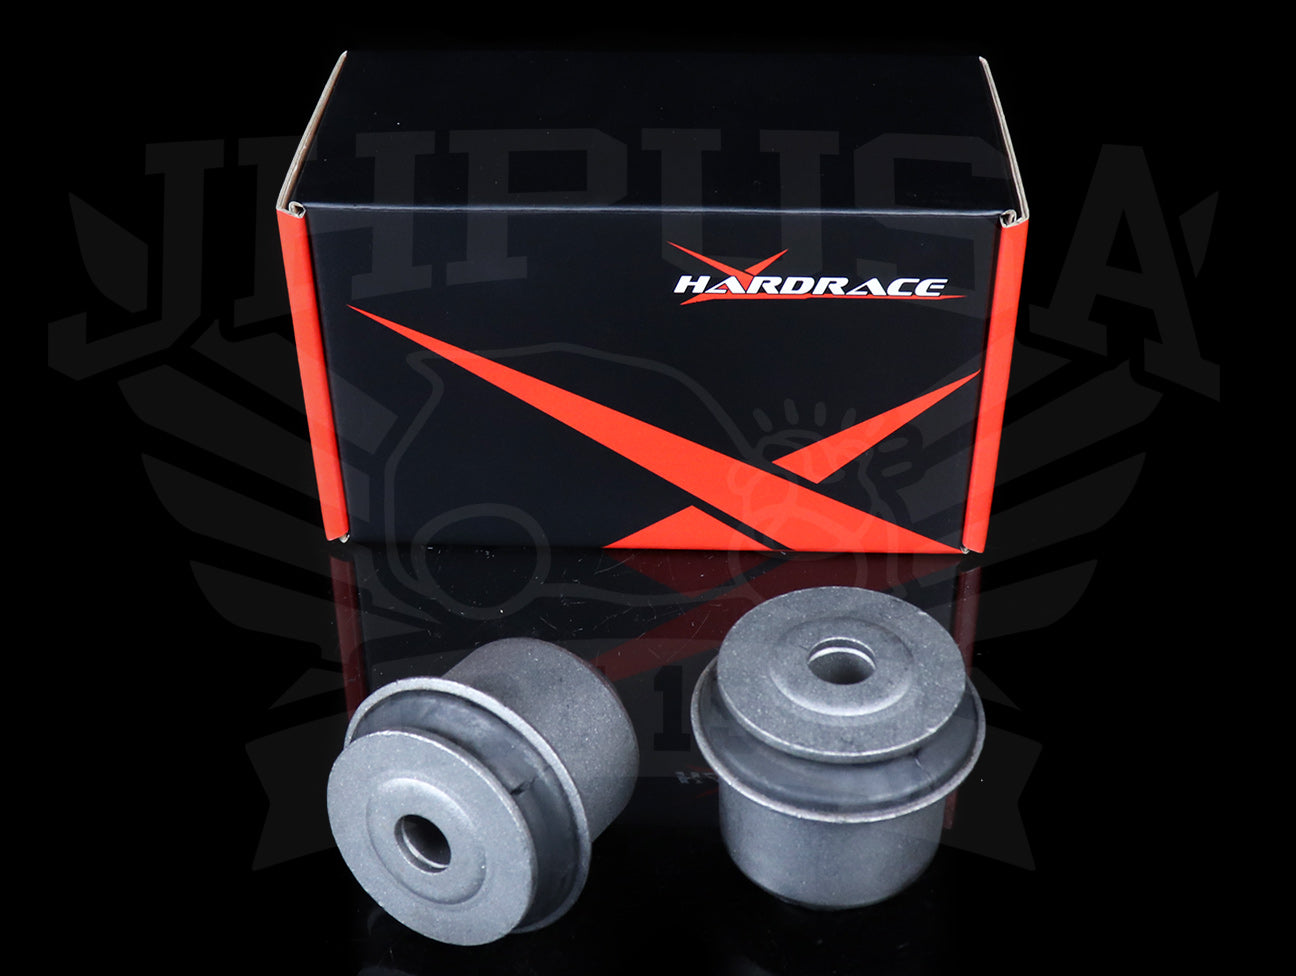 Hardrace Front Lower Arm Bushings (Front Body Side) - 00-09 S2000